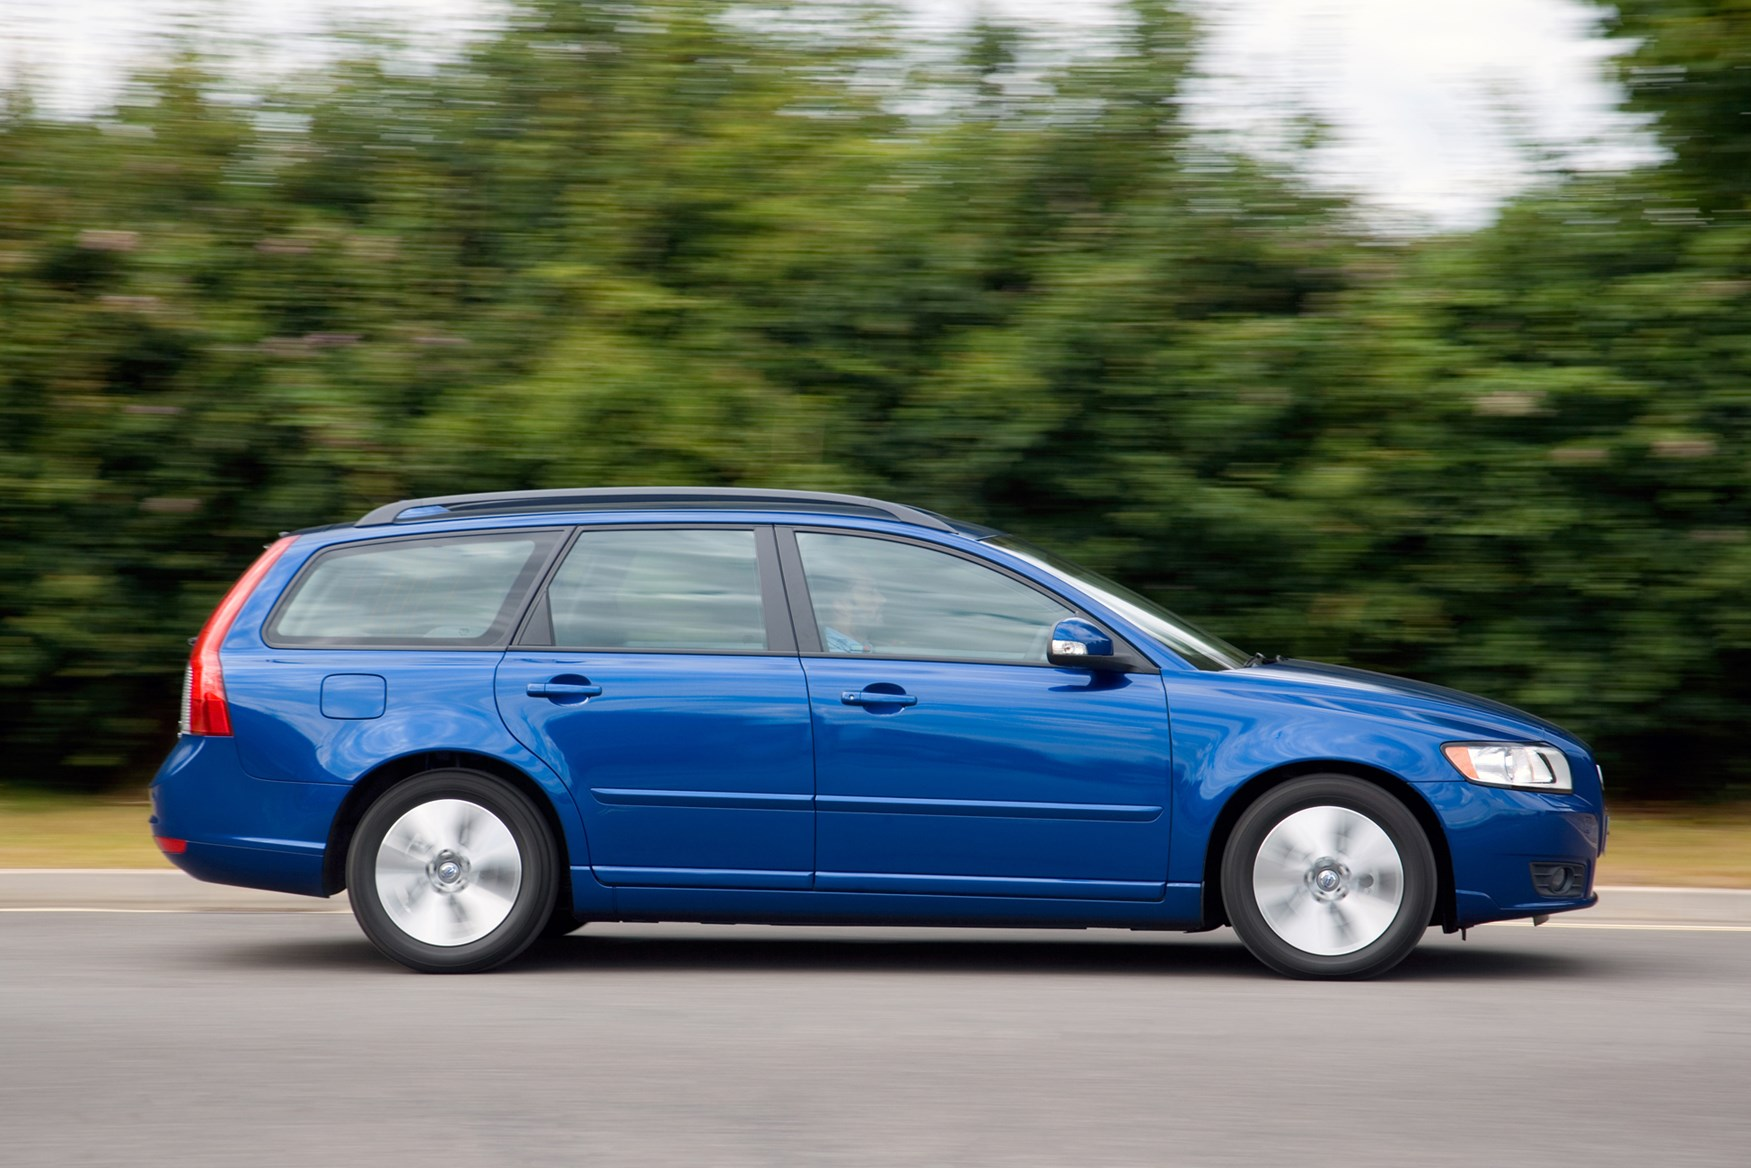 View all images of the volvo v50 04 12